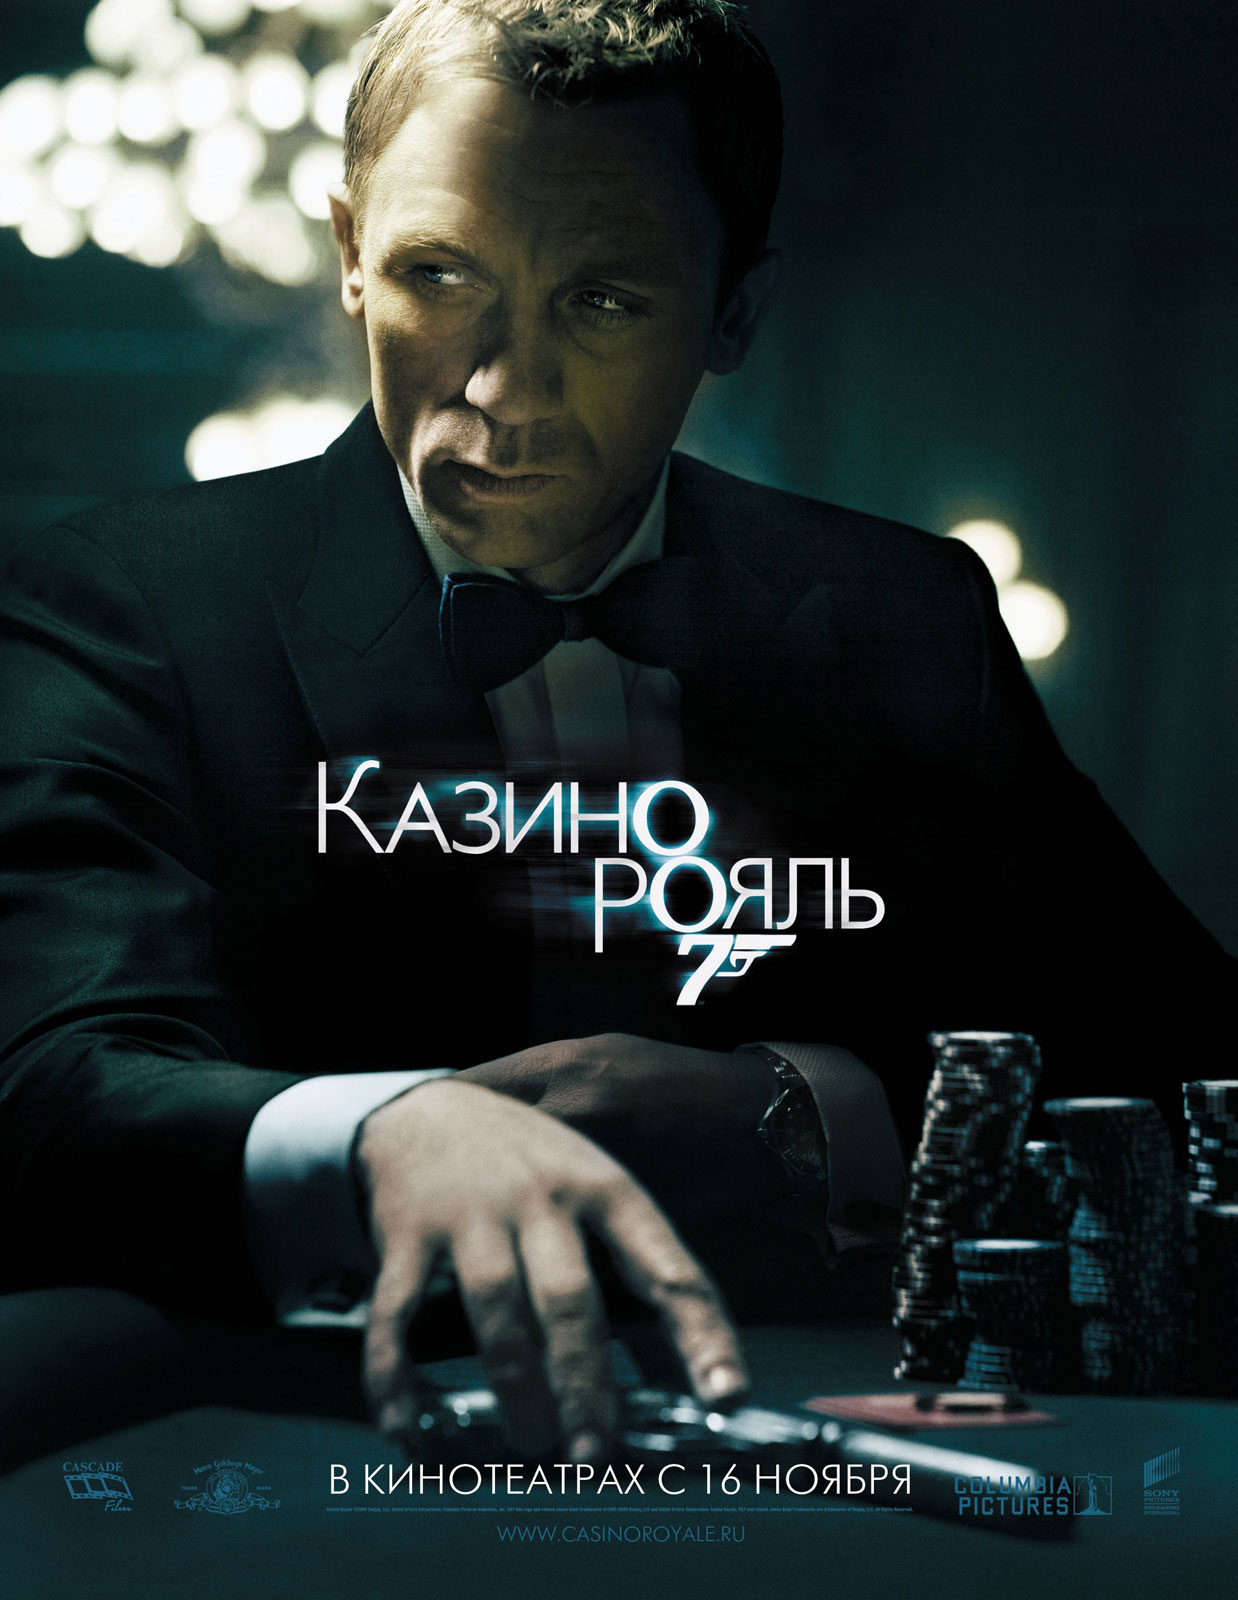 casino royale movie online free poker american